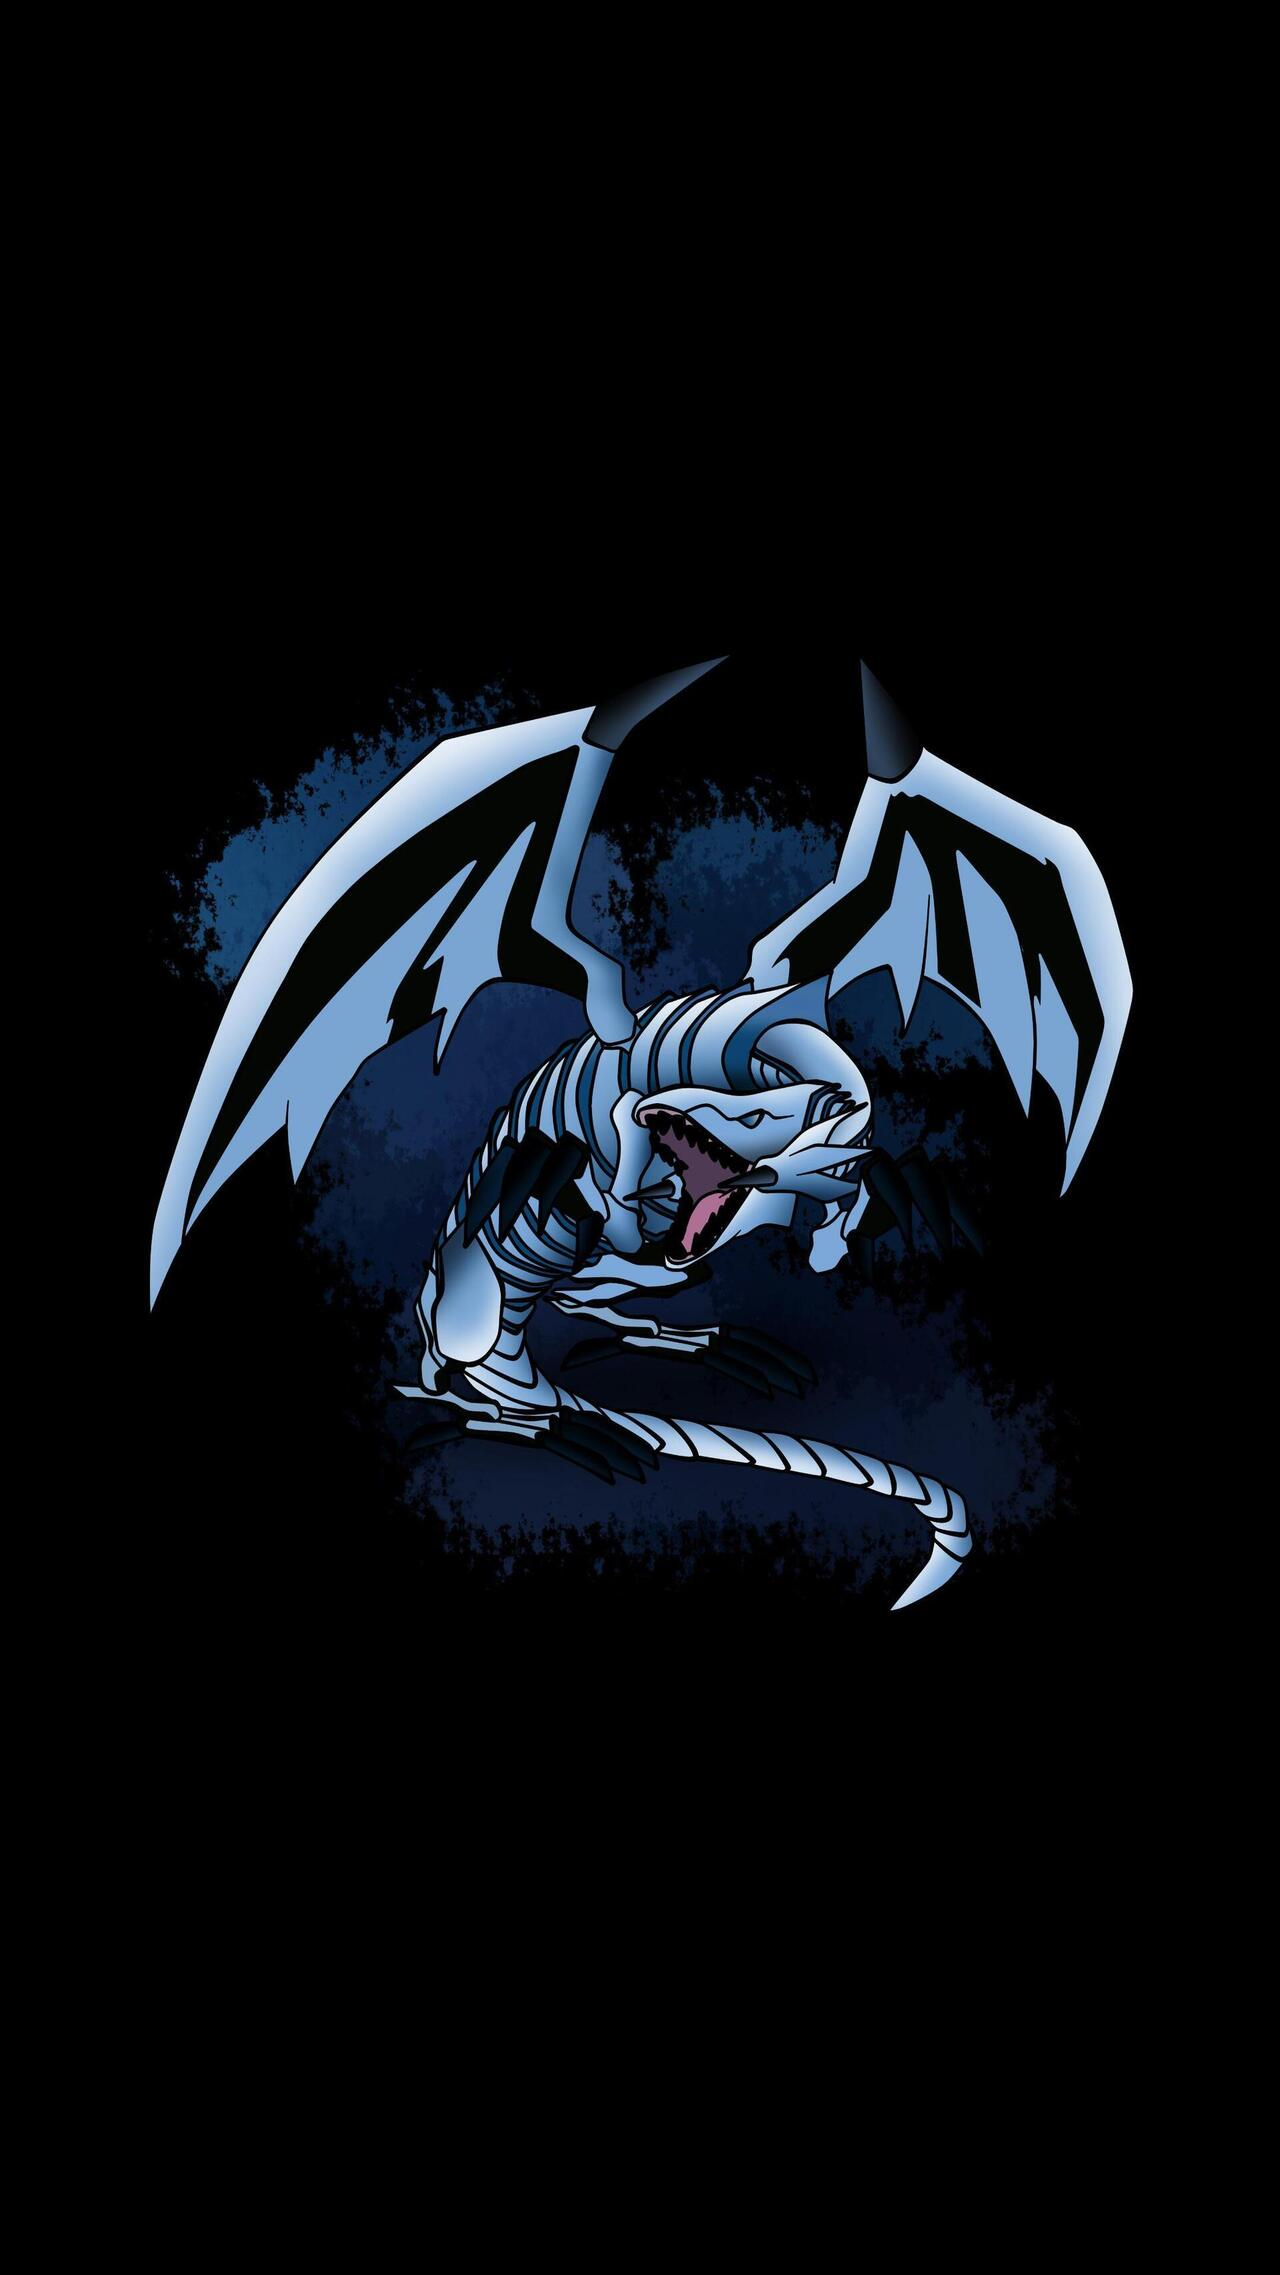 Dragon Mythical Creature Photo